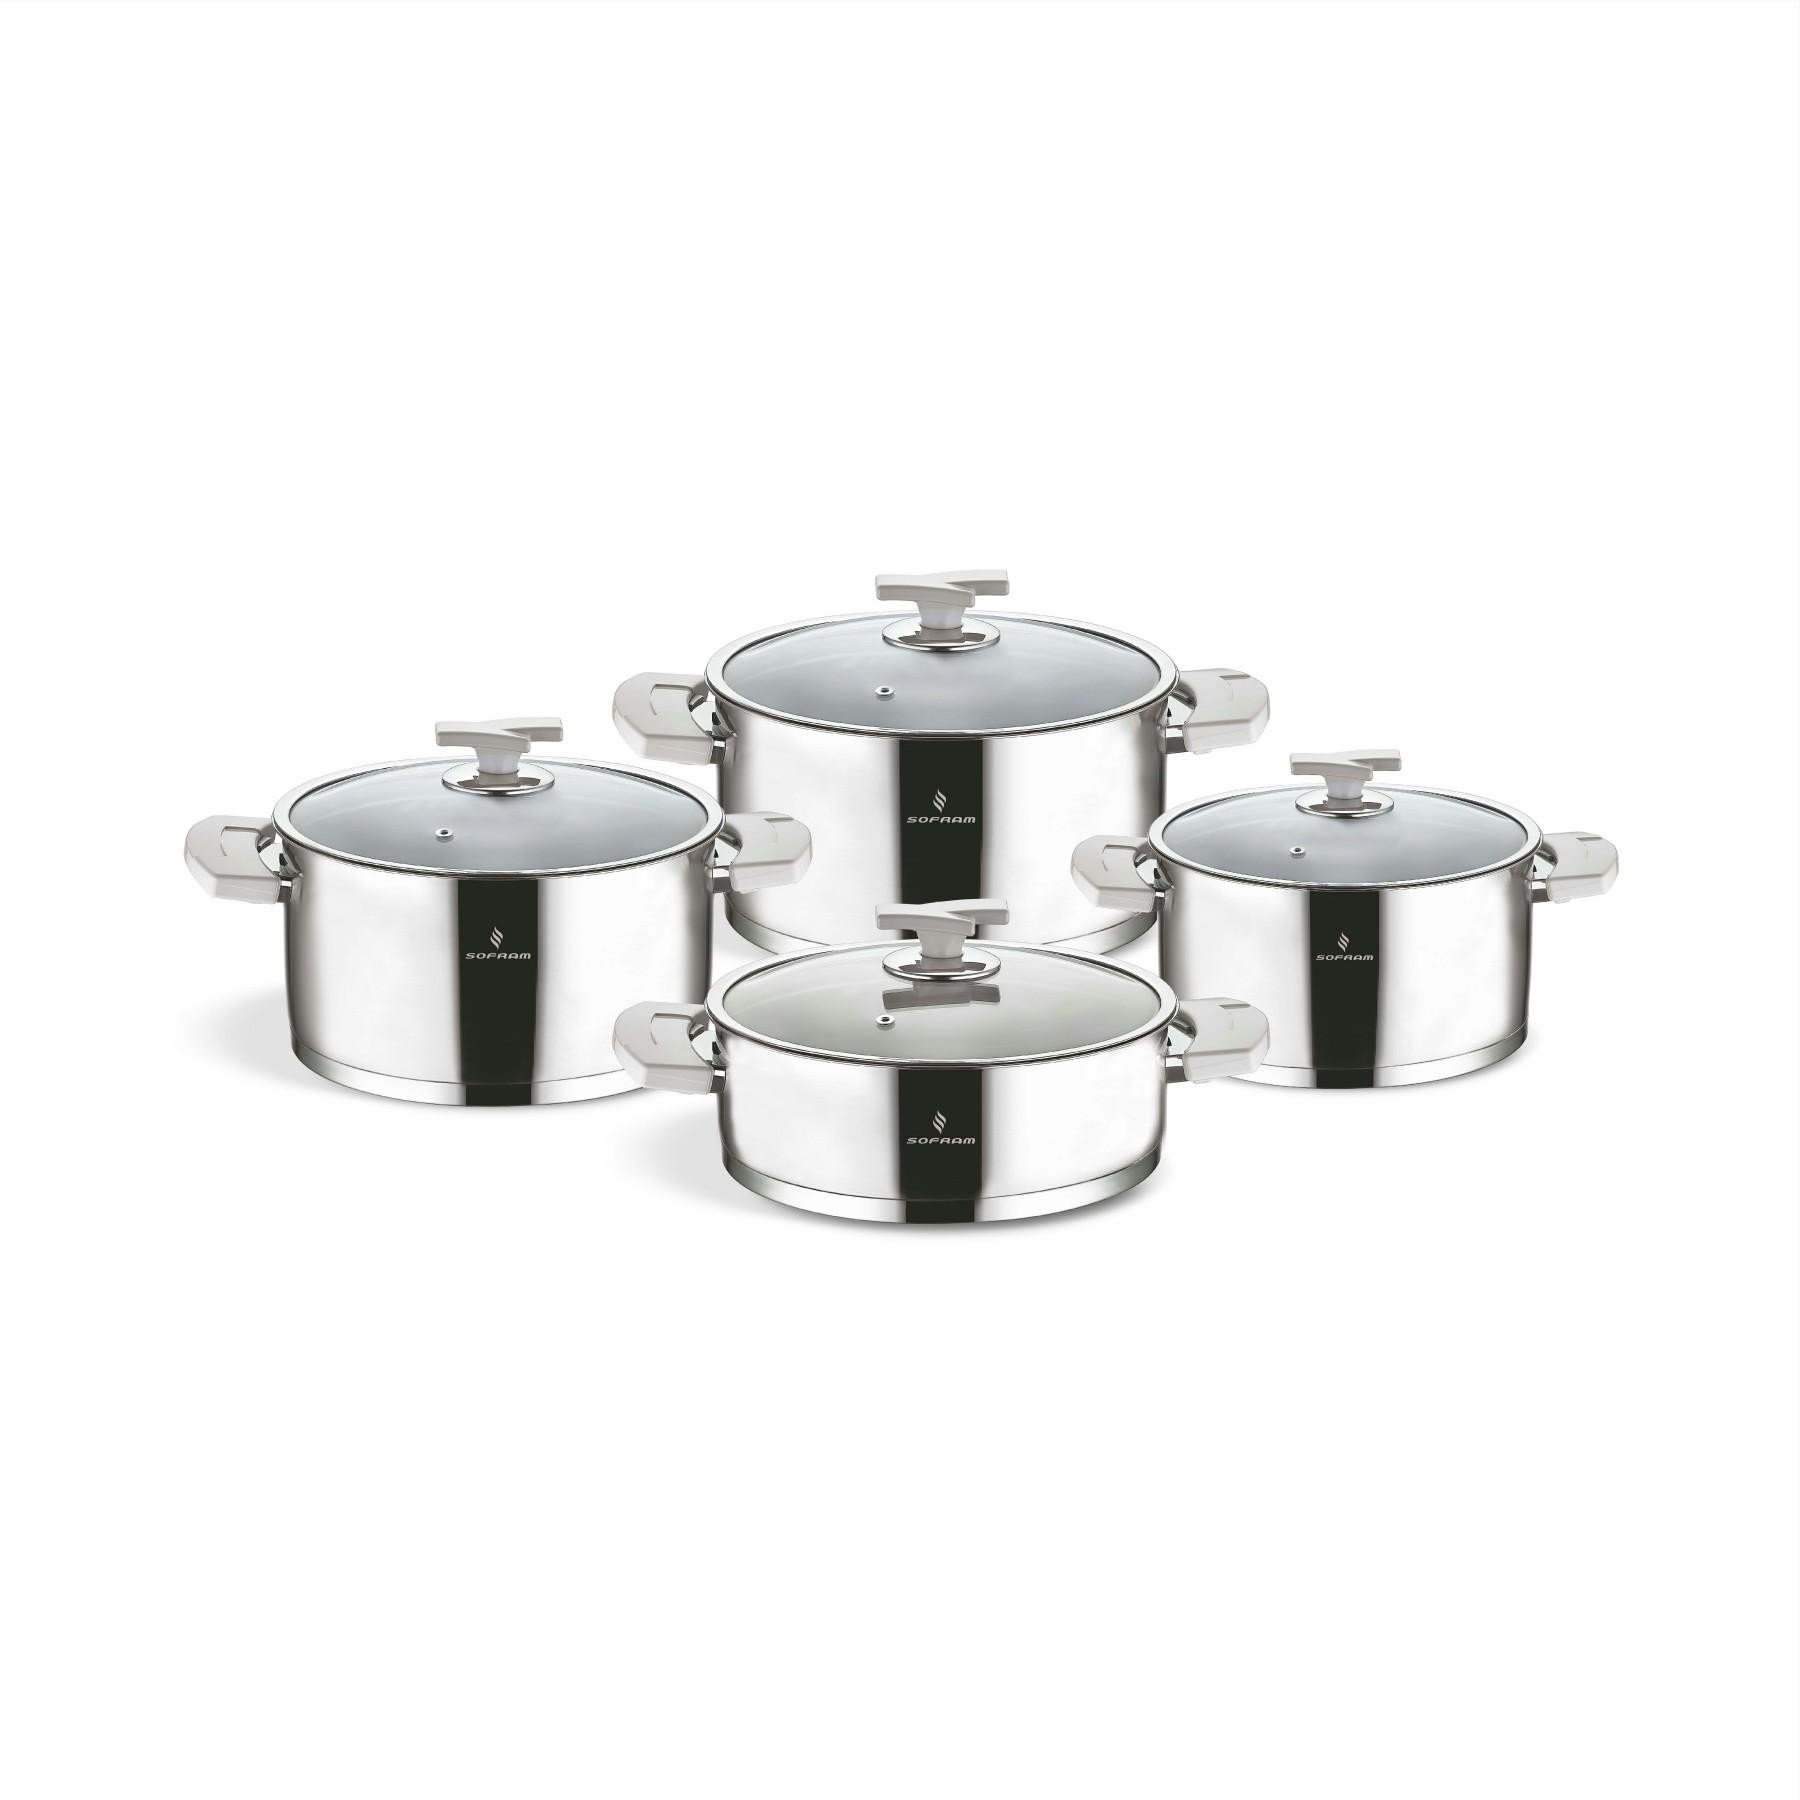 Sofram TETRA 8 Pieces Cream Cookware Set